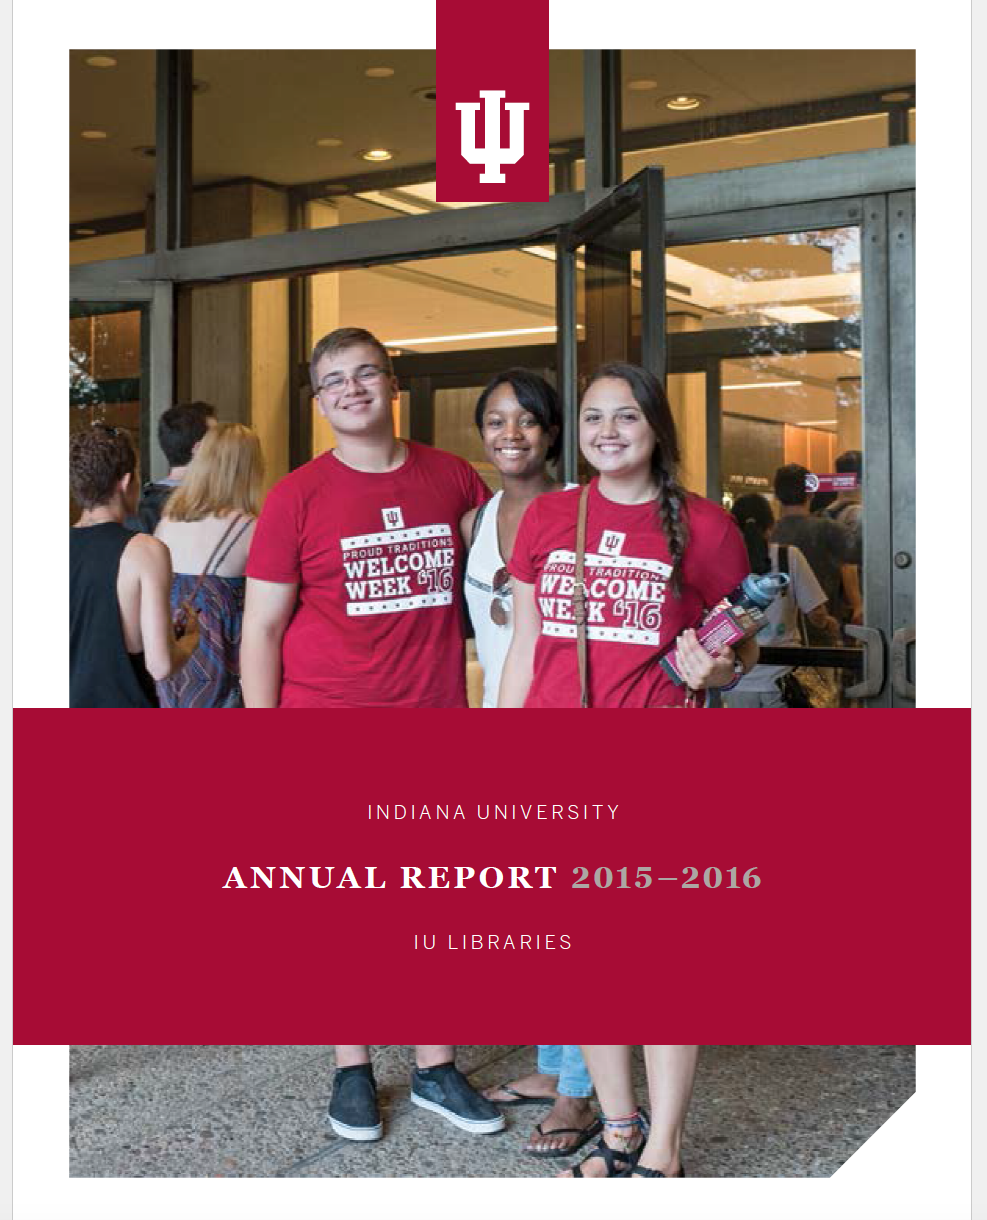 Image of IU Libraries Annual Report cover